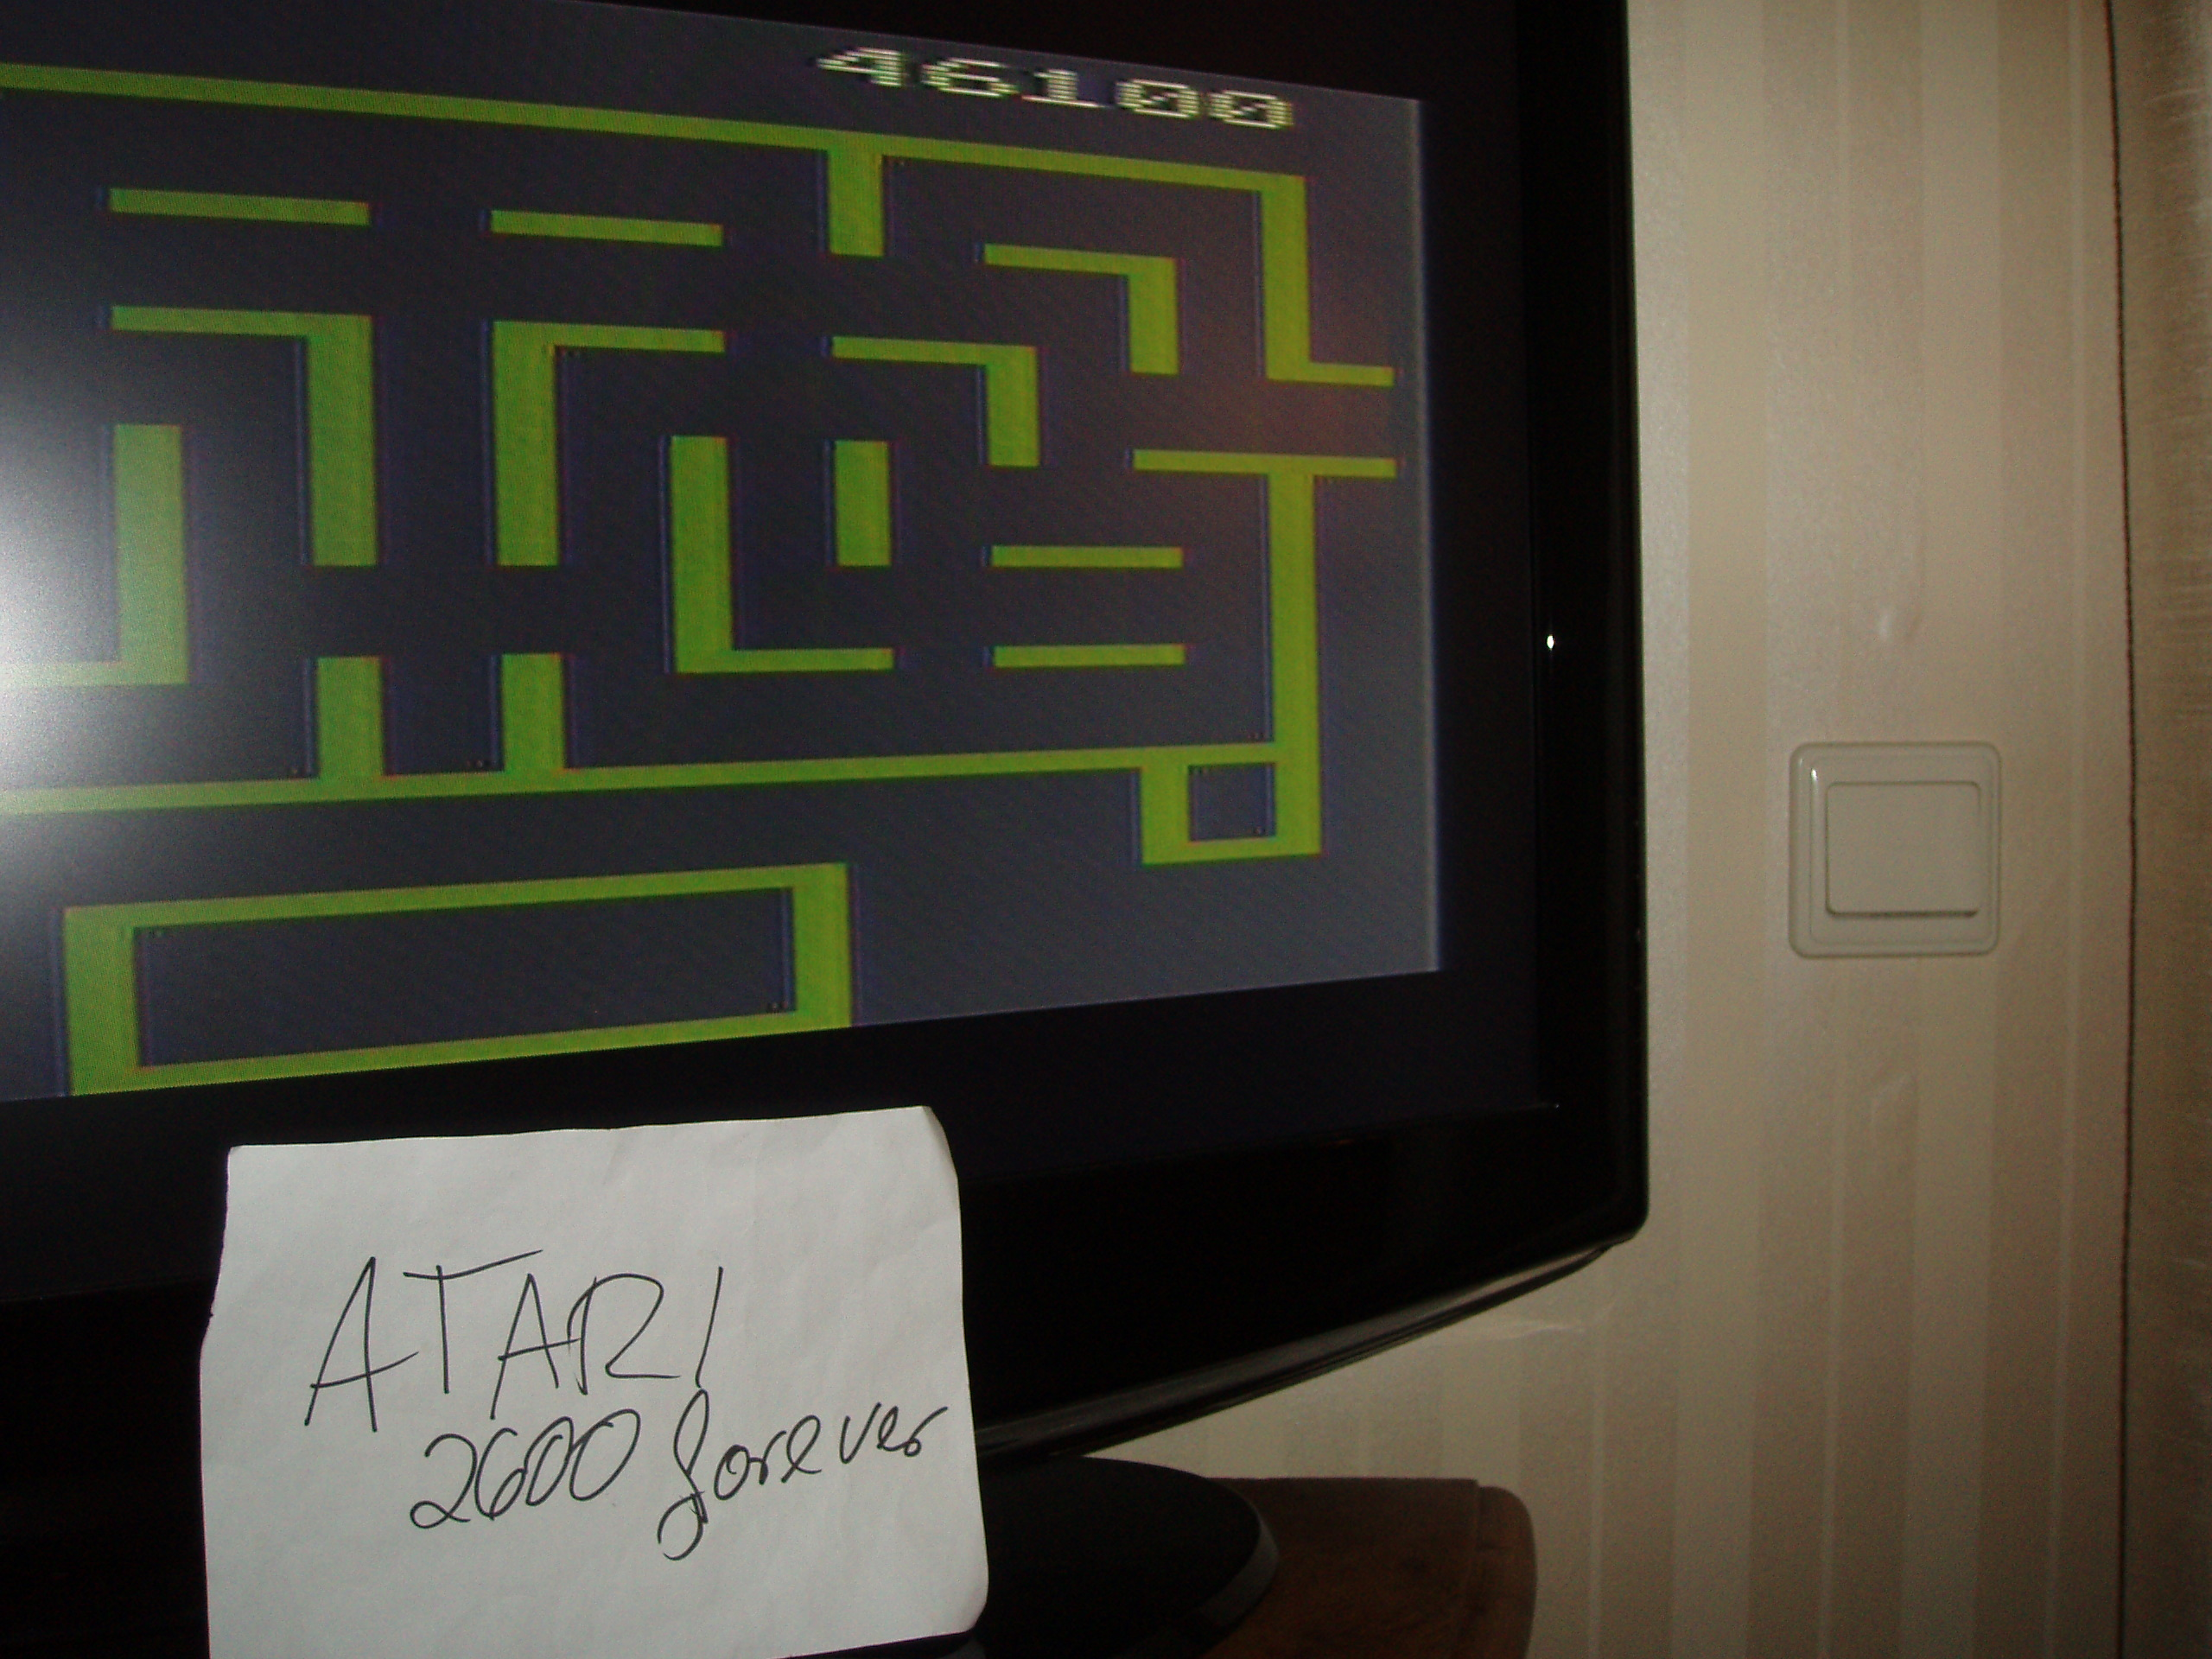 atari2600forever: Wizard of Wor (Atari 2600 Novice/B) 46,100 points on 2018-06-18 03:24:52